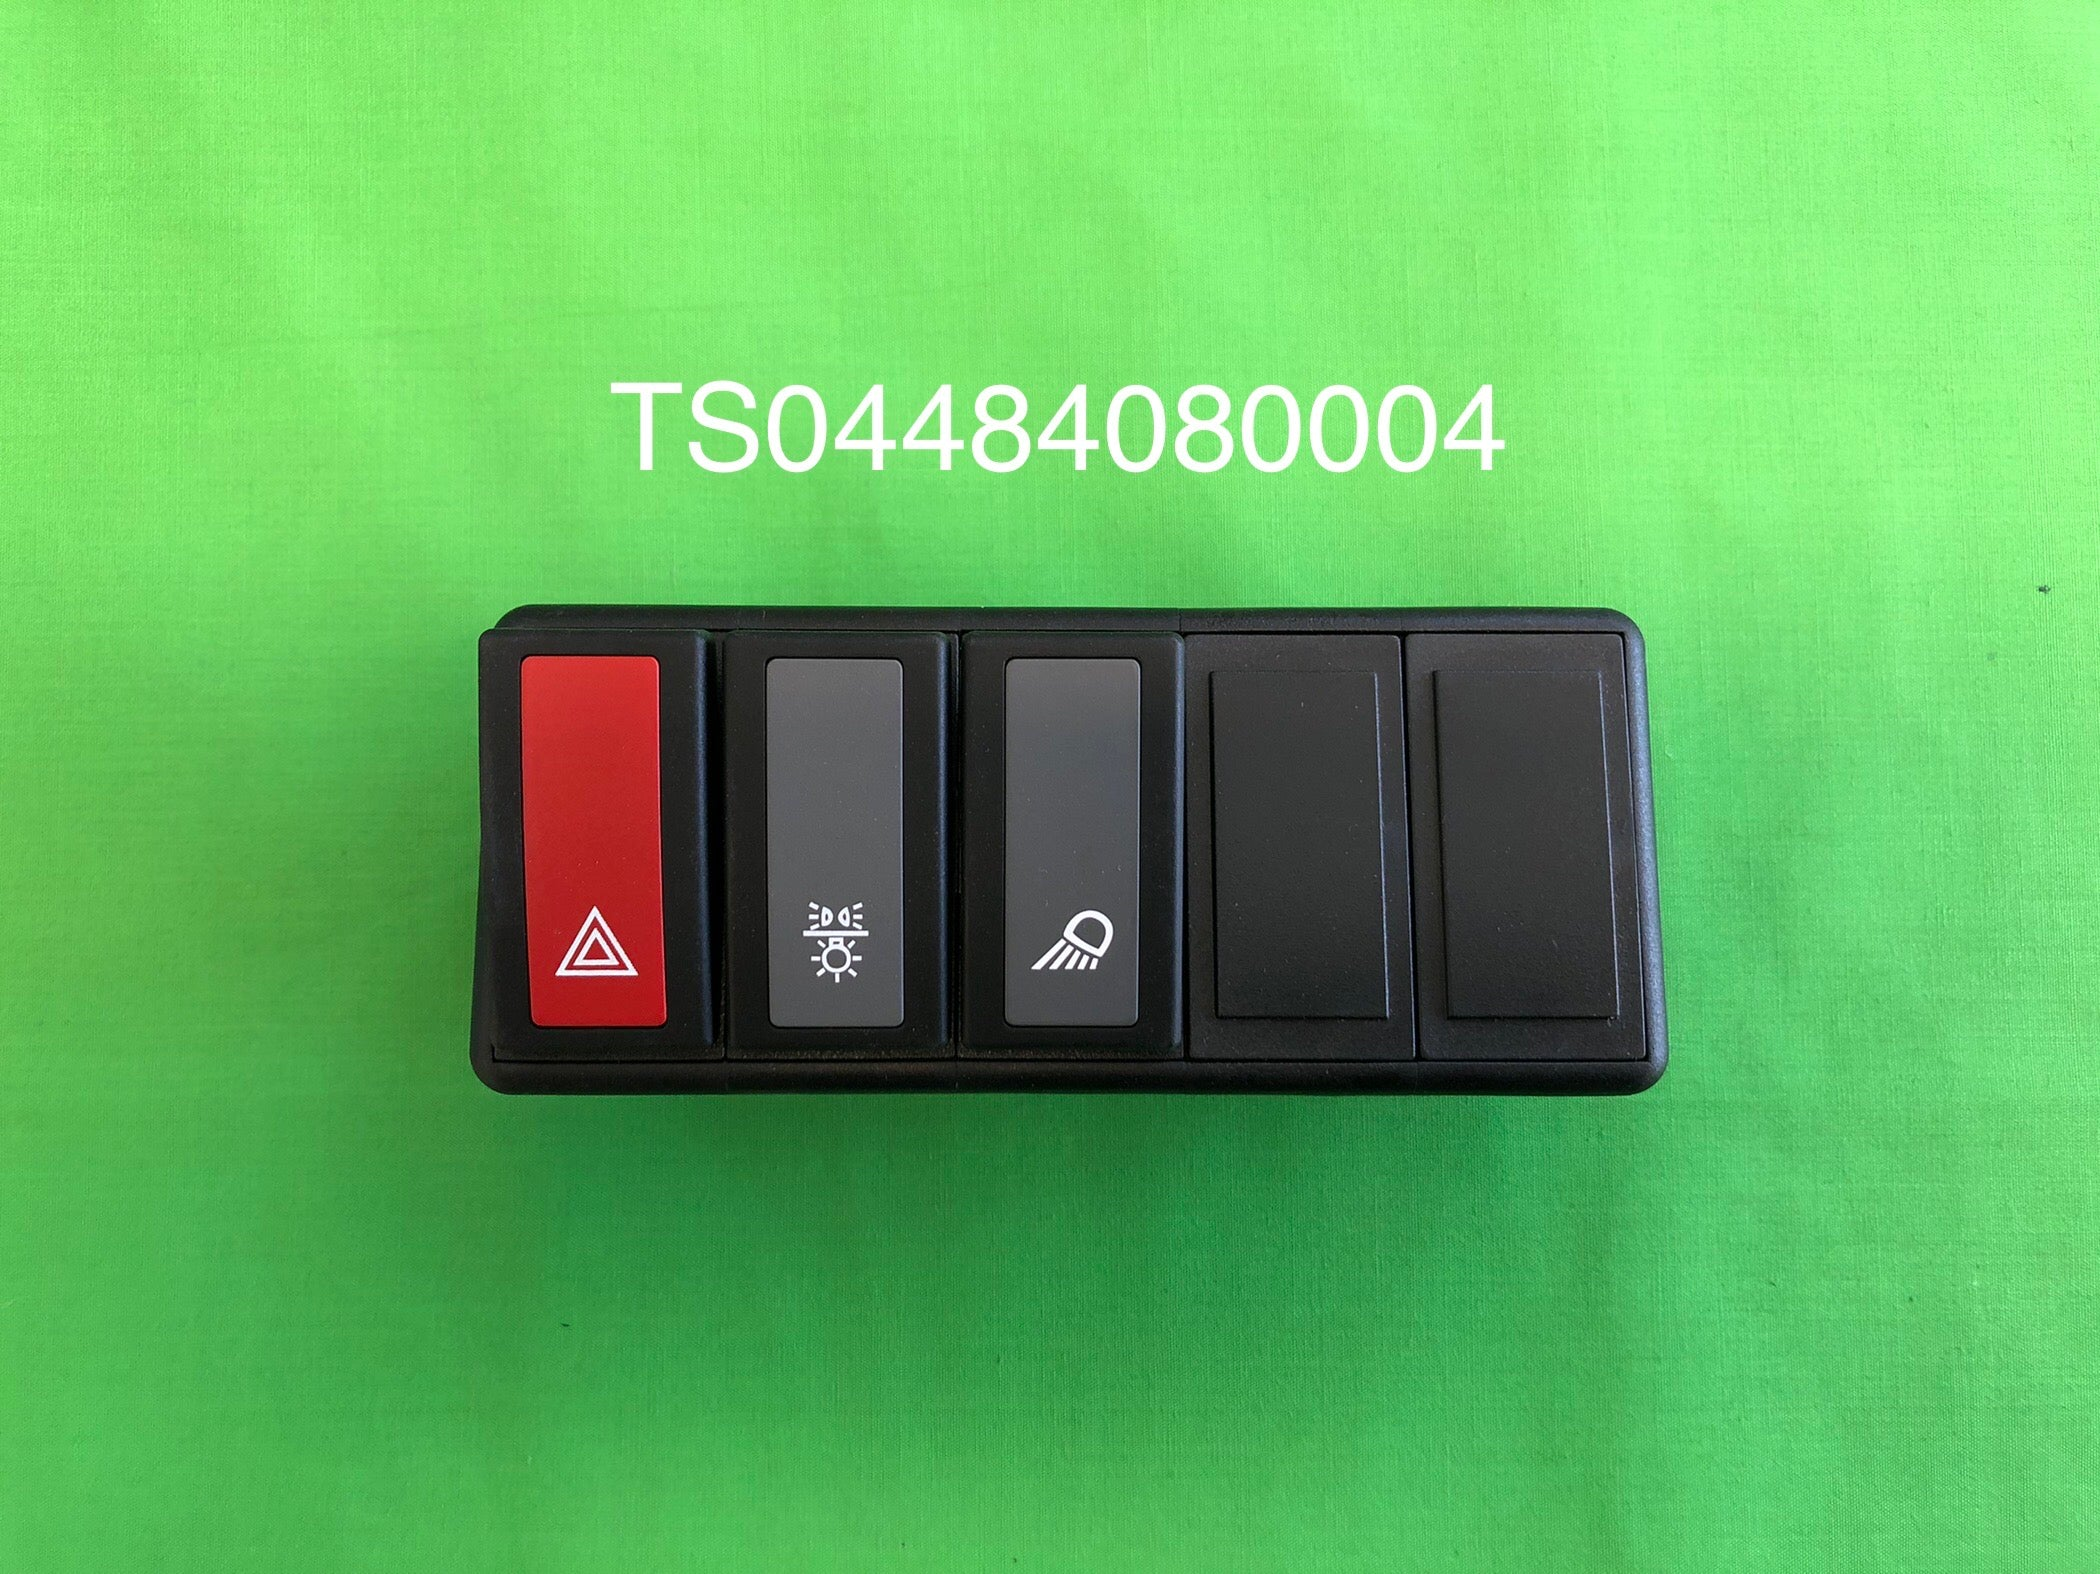 TS04484080004 Rocker Switch Lights Hazards